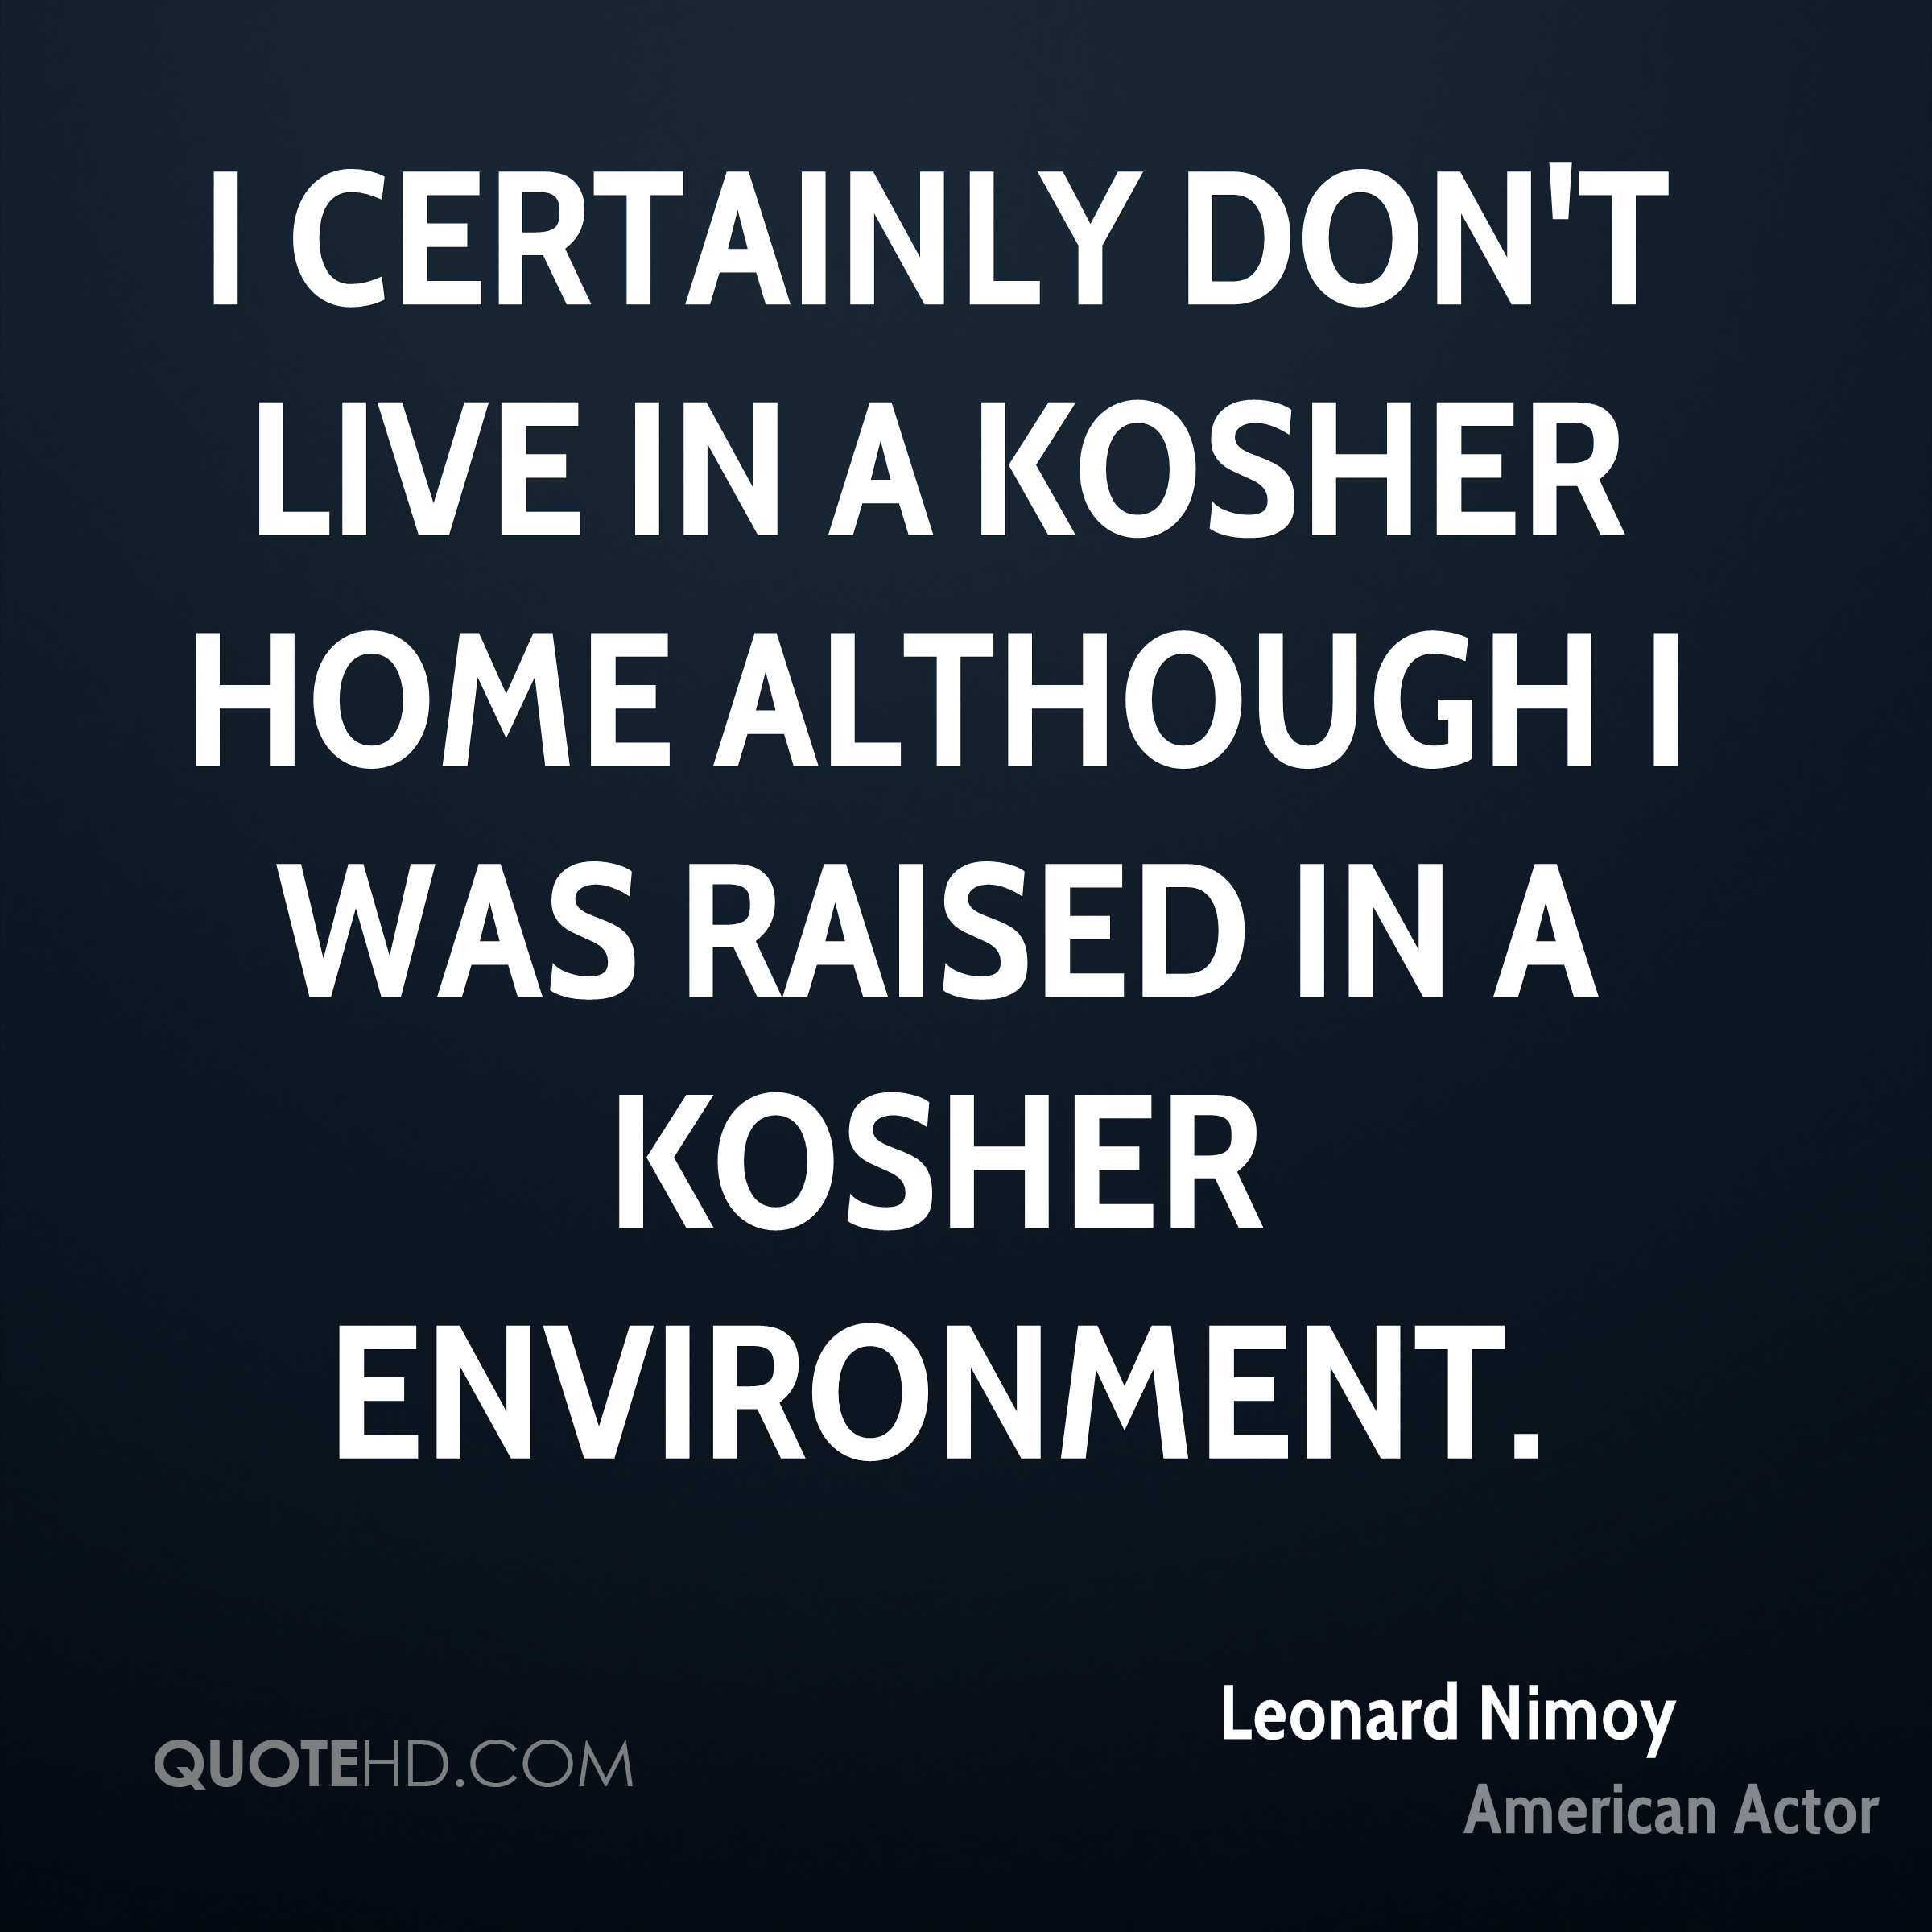 I certainly don't live in a kosher home although I was raised in a kosher environment.